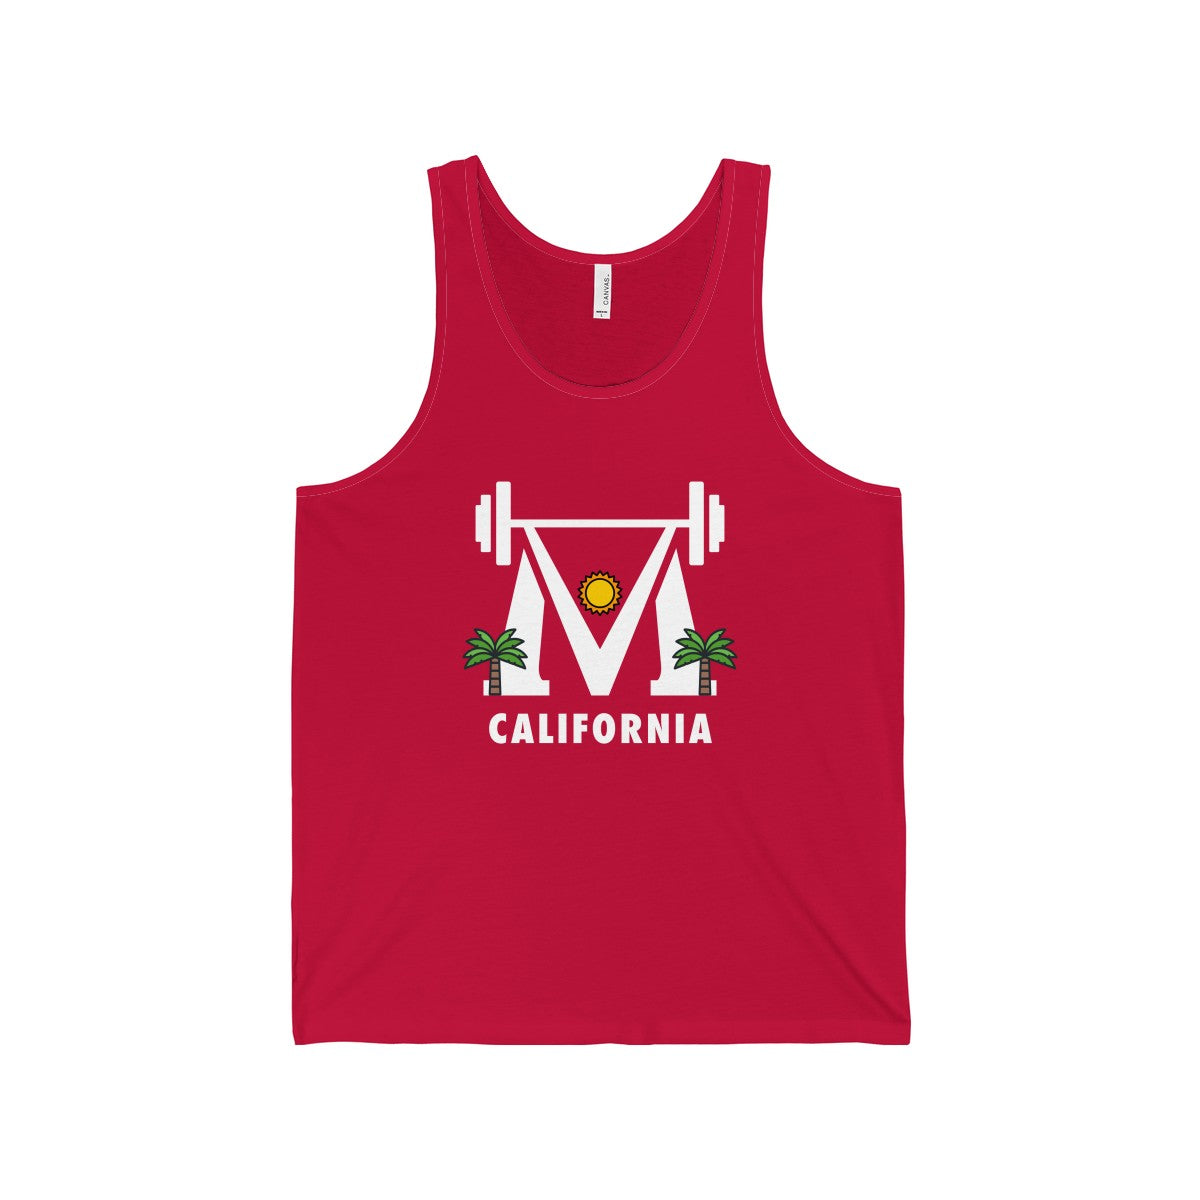 Men's California Jersey Tank